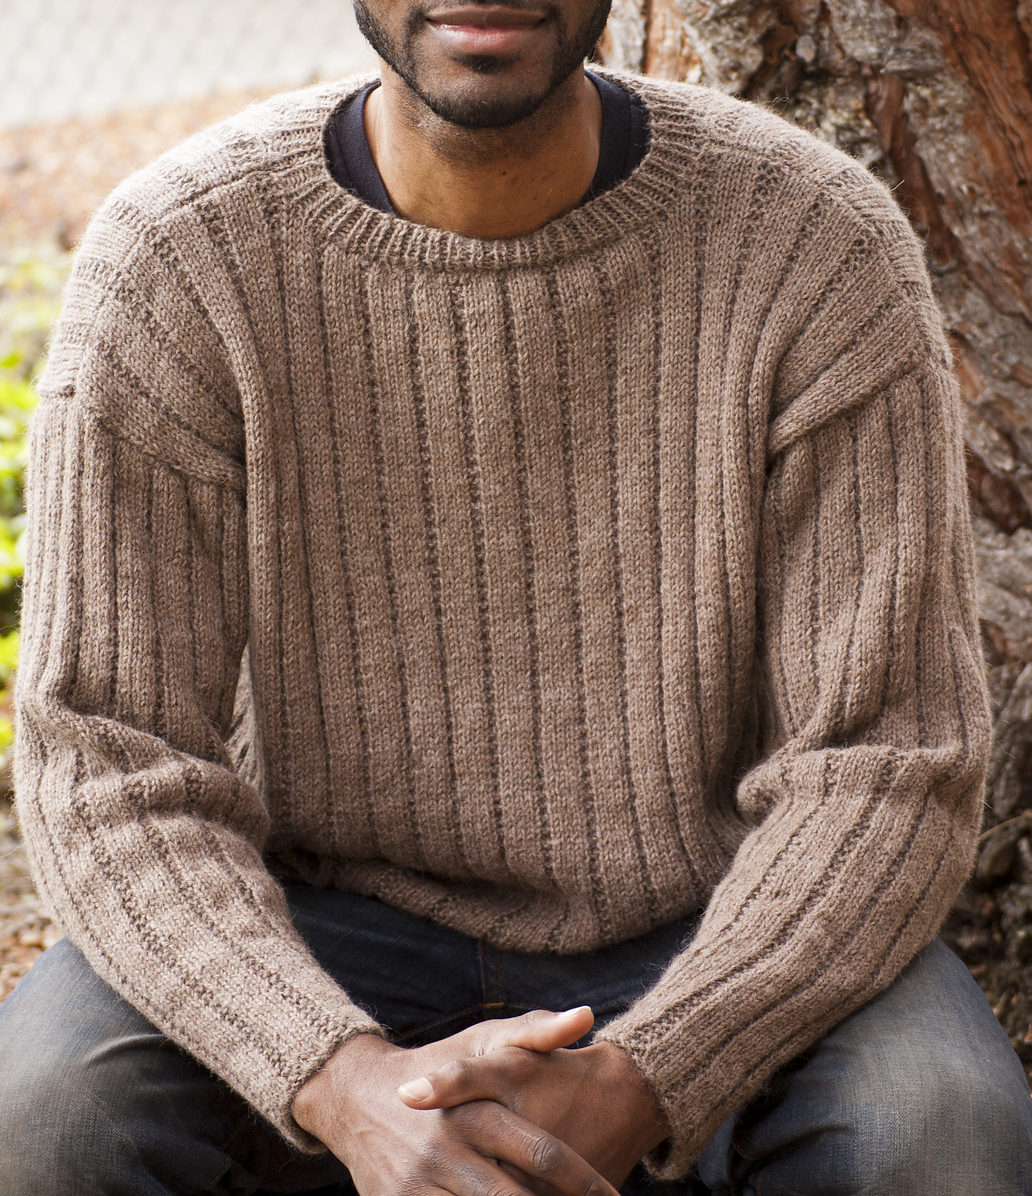 Mens Knitting Patterns Free Knitting Patterns For Mens Cardigan Sweaters